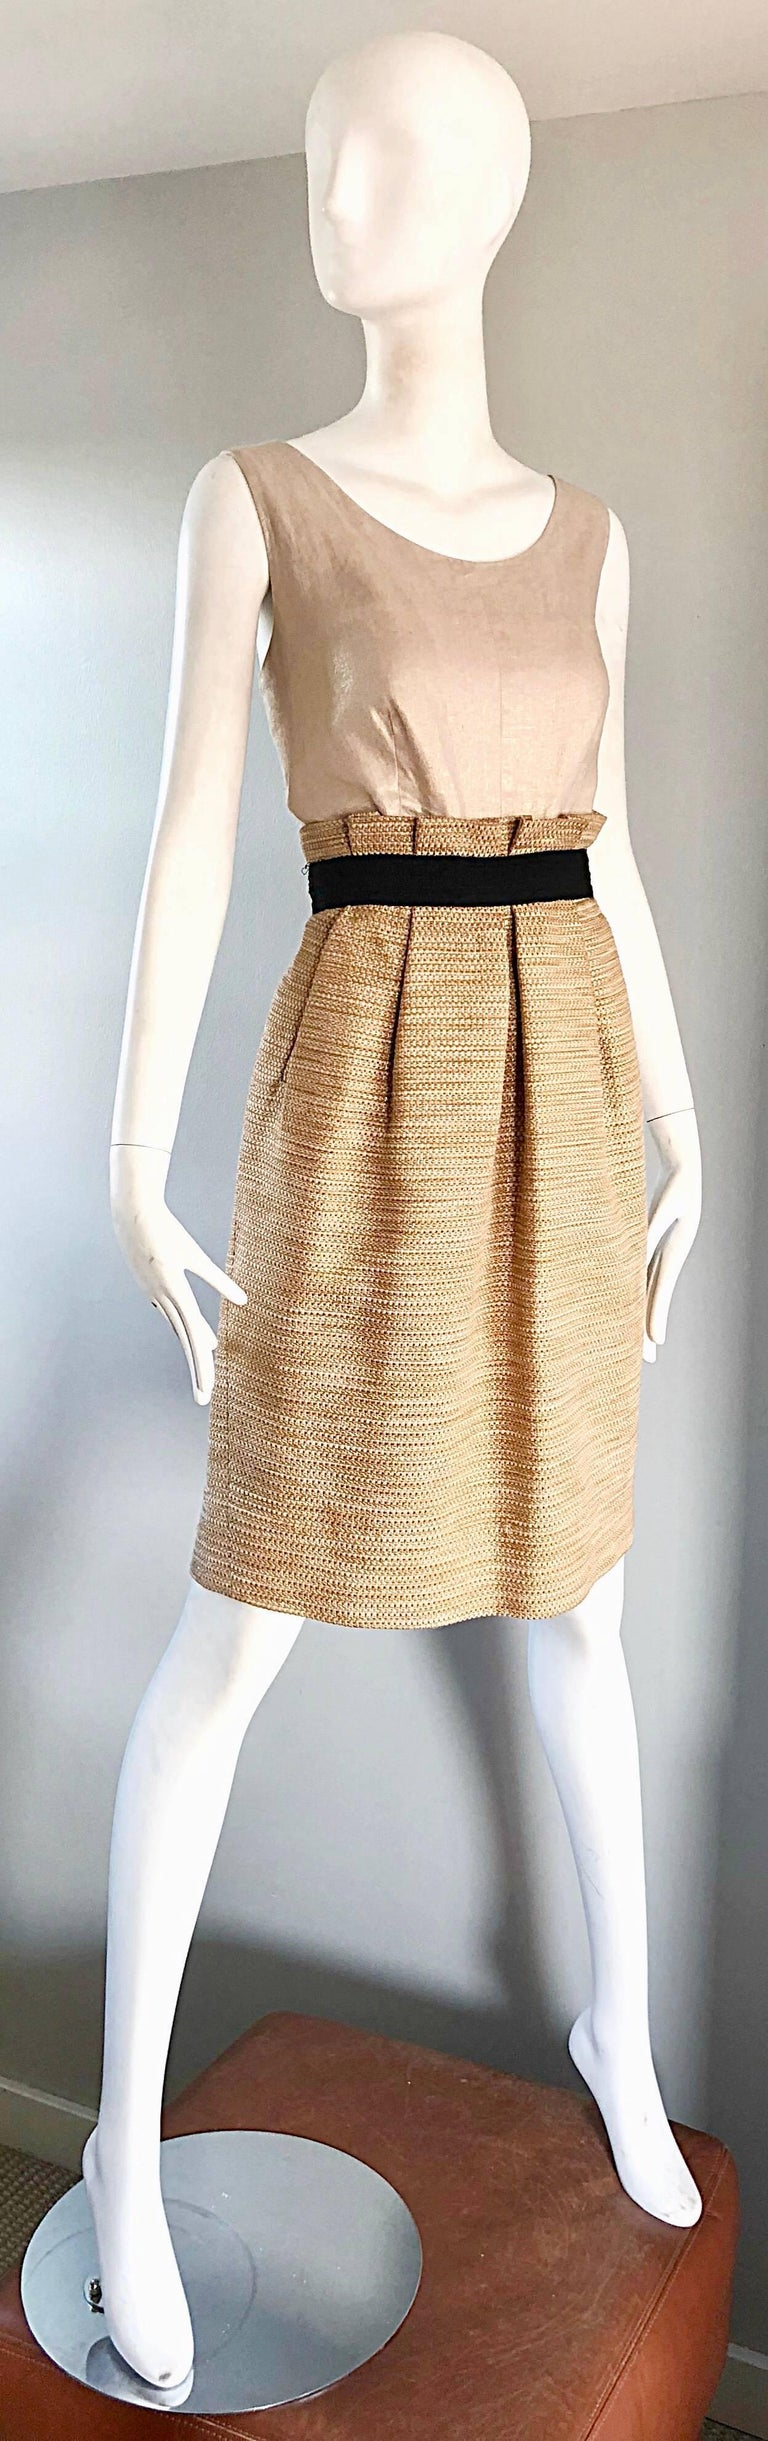 NWT 1990s Dolce & Gabbana Vintage 90s Gold Metallic Size 8 / 10 Cocktail Dress For Sale 3